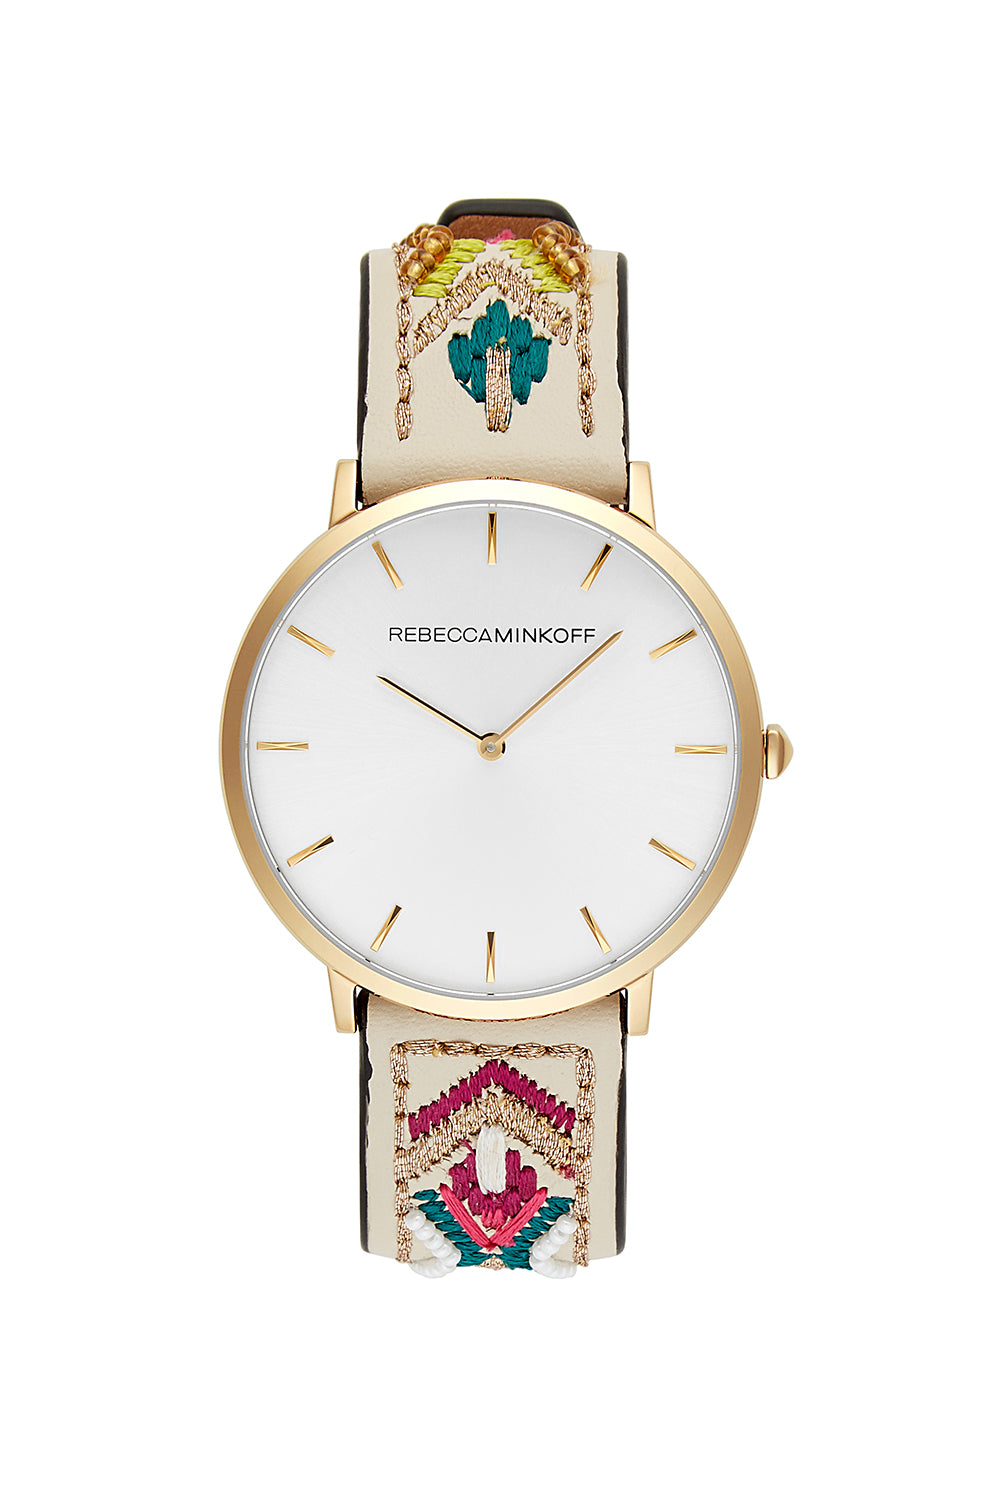 Rebecca-Minkoff Major Gold Tone Pop Color Strap Watch, 40MM